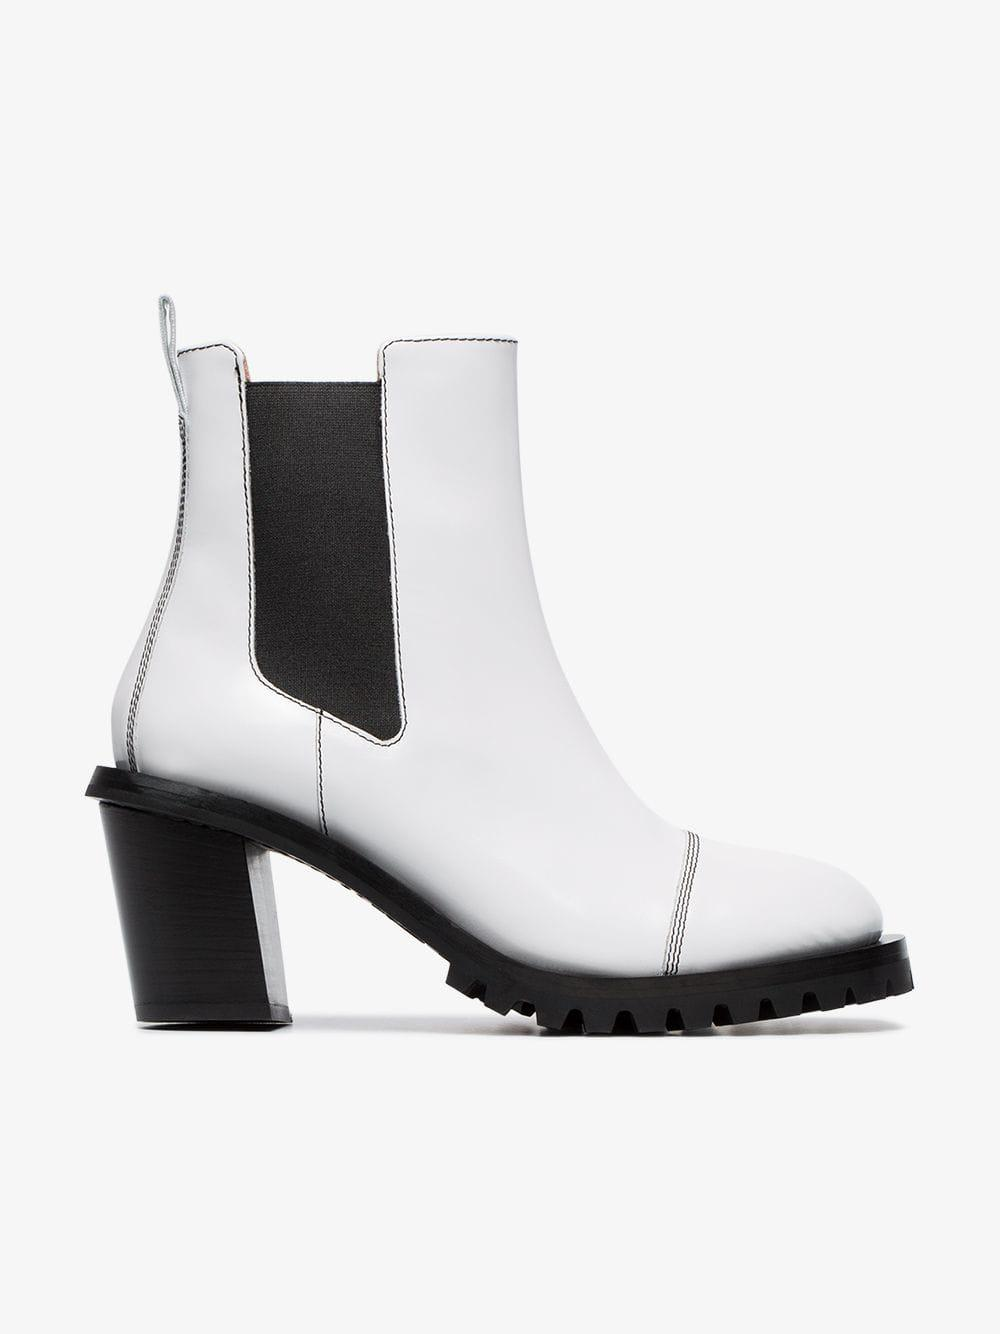 91a994fa1bb0 Acne Pull-on 65 Leather Ankle Boots in White - Lyst